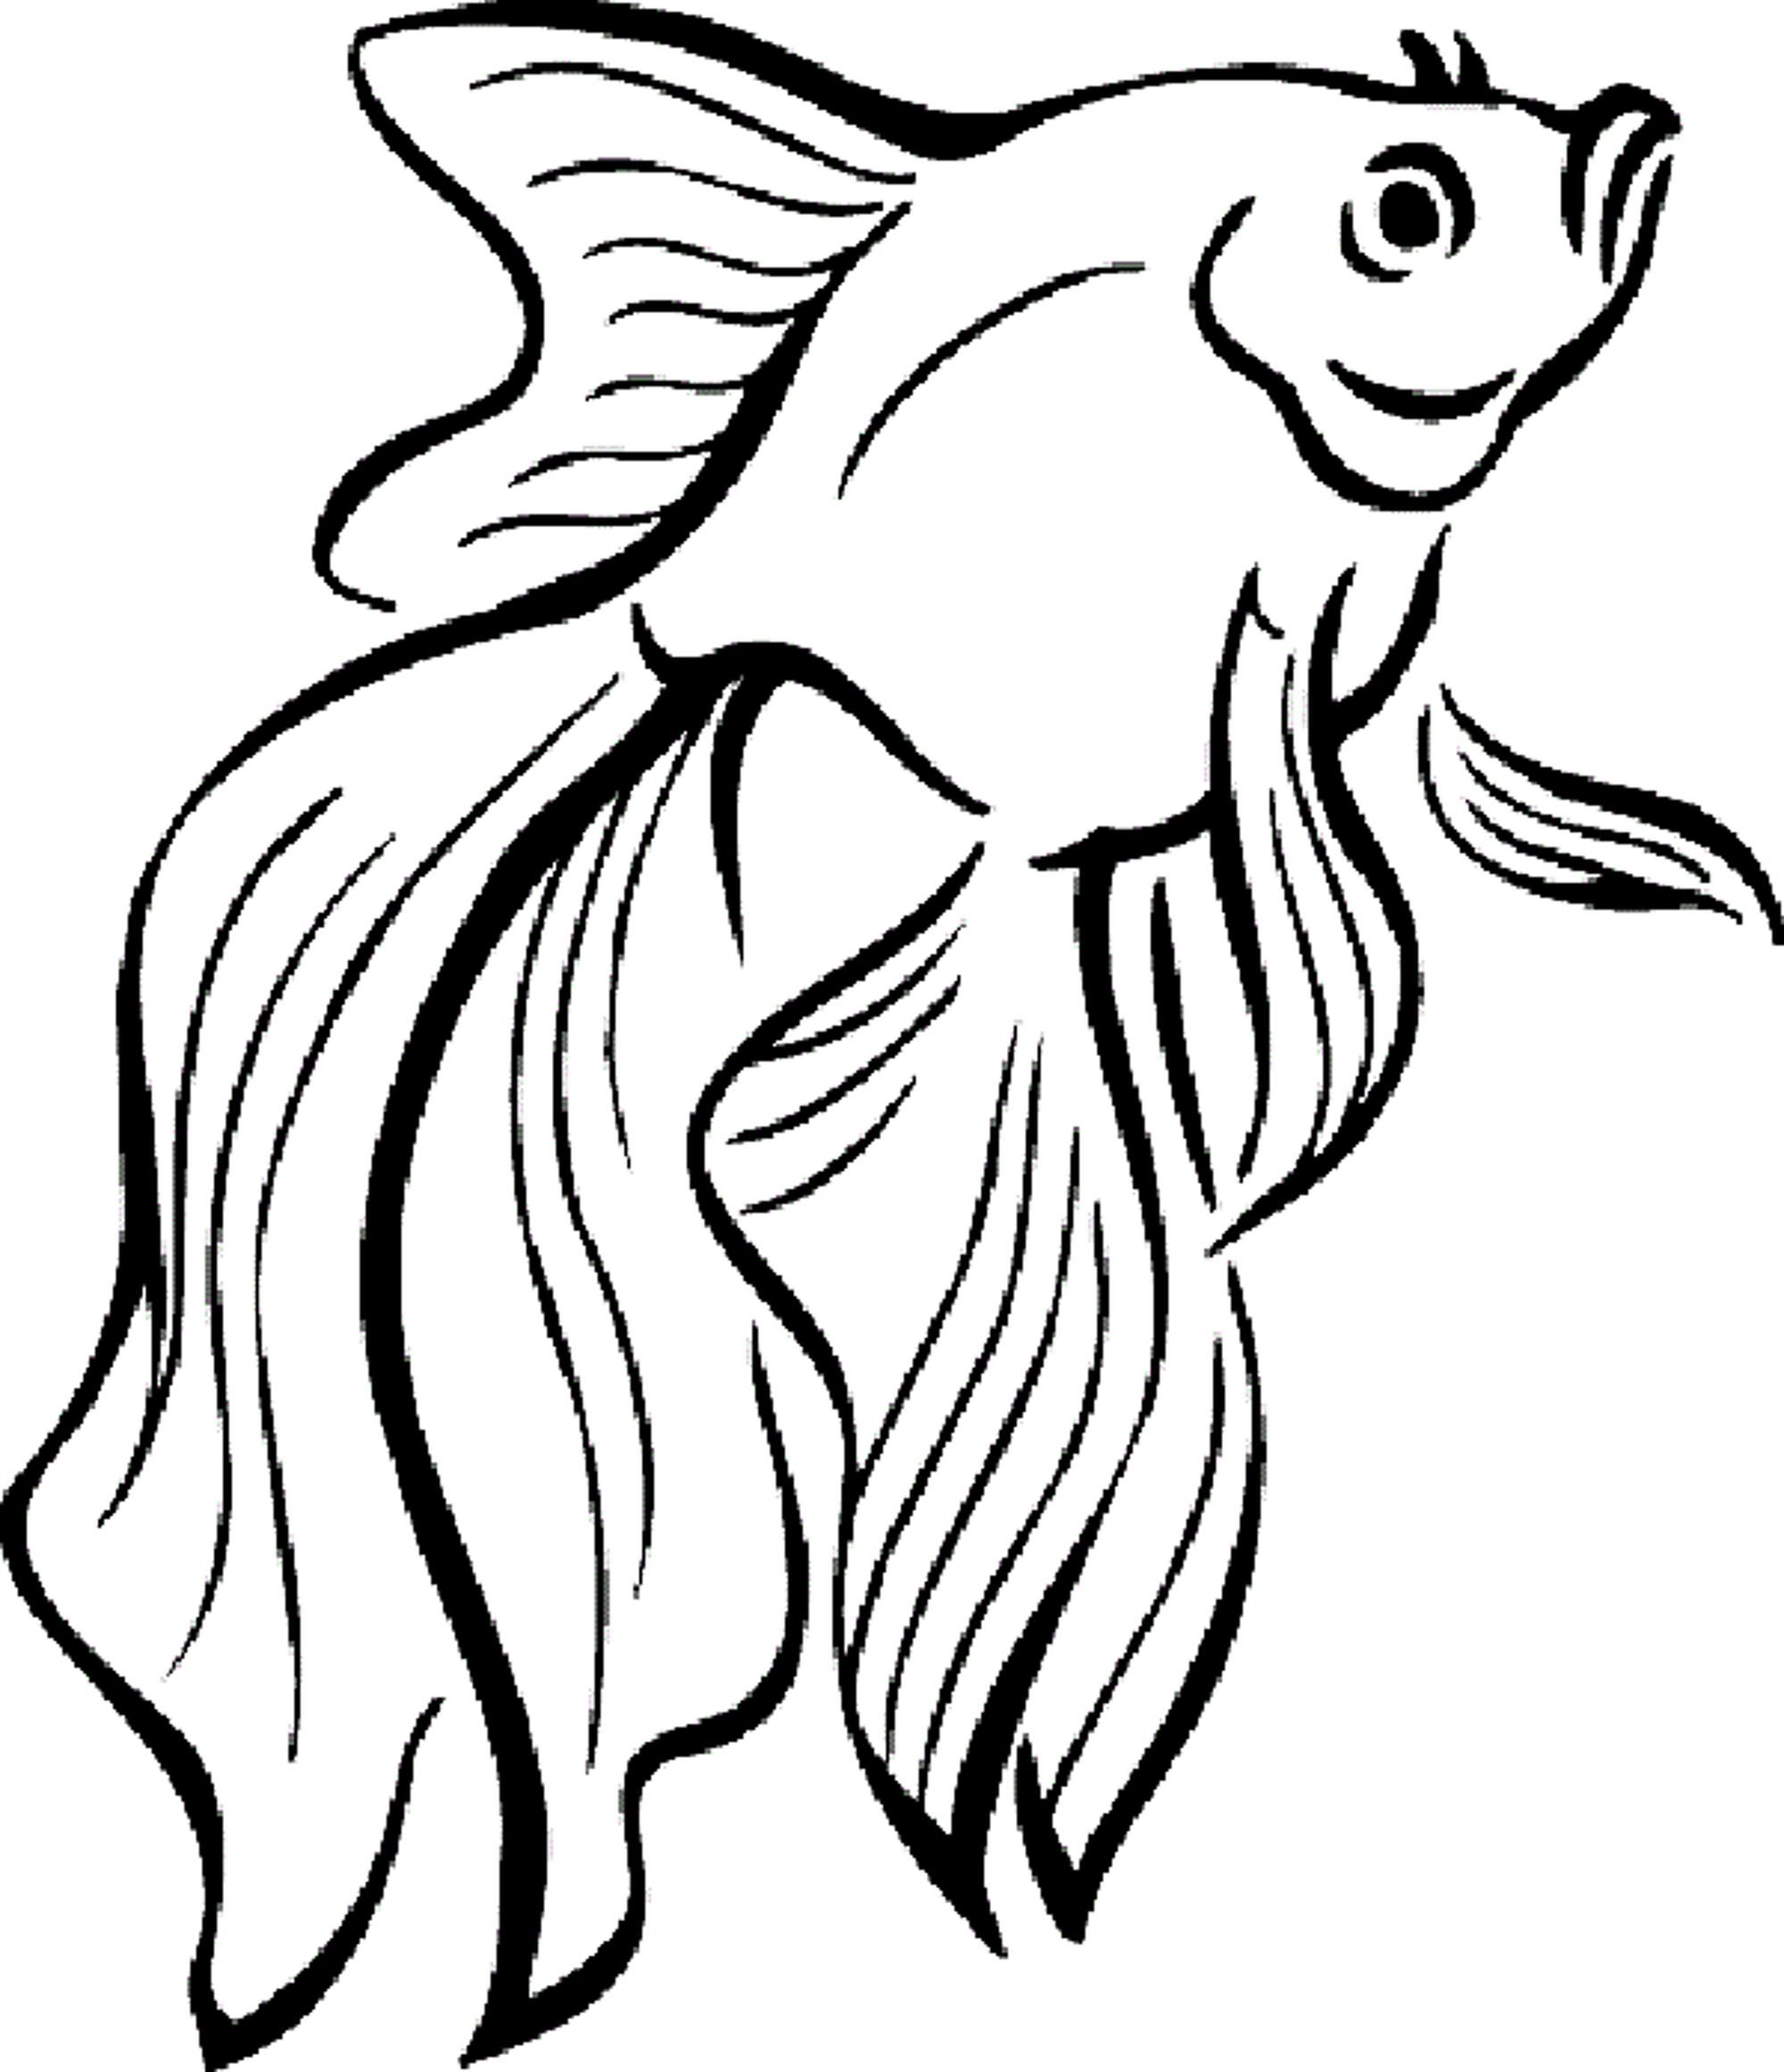 Pout Pout Fish Coloring Pages